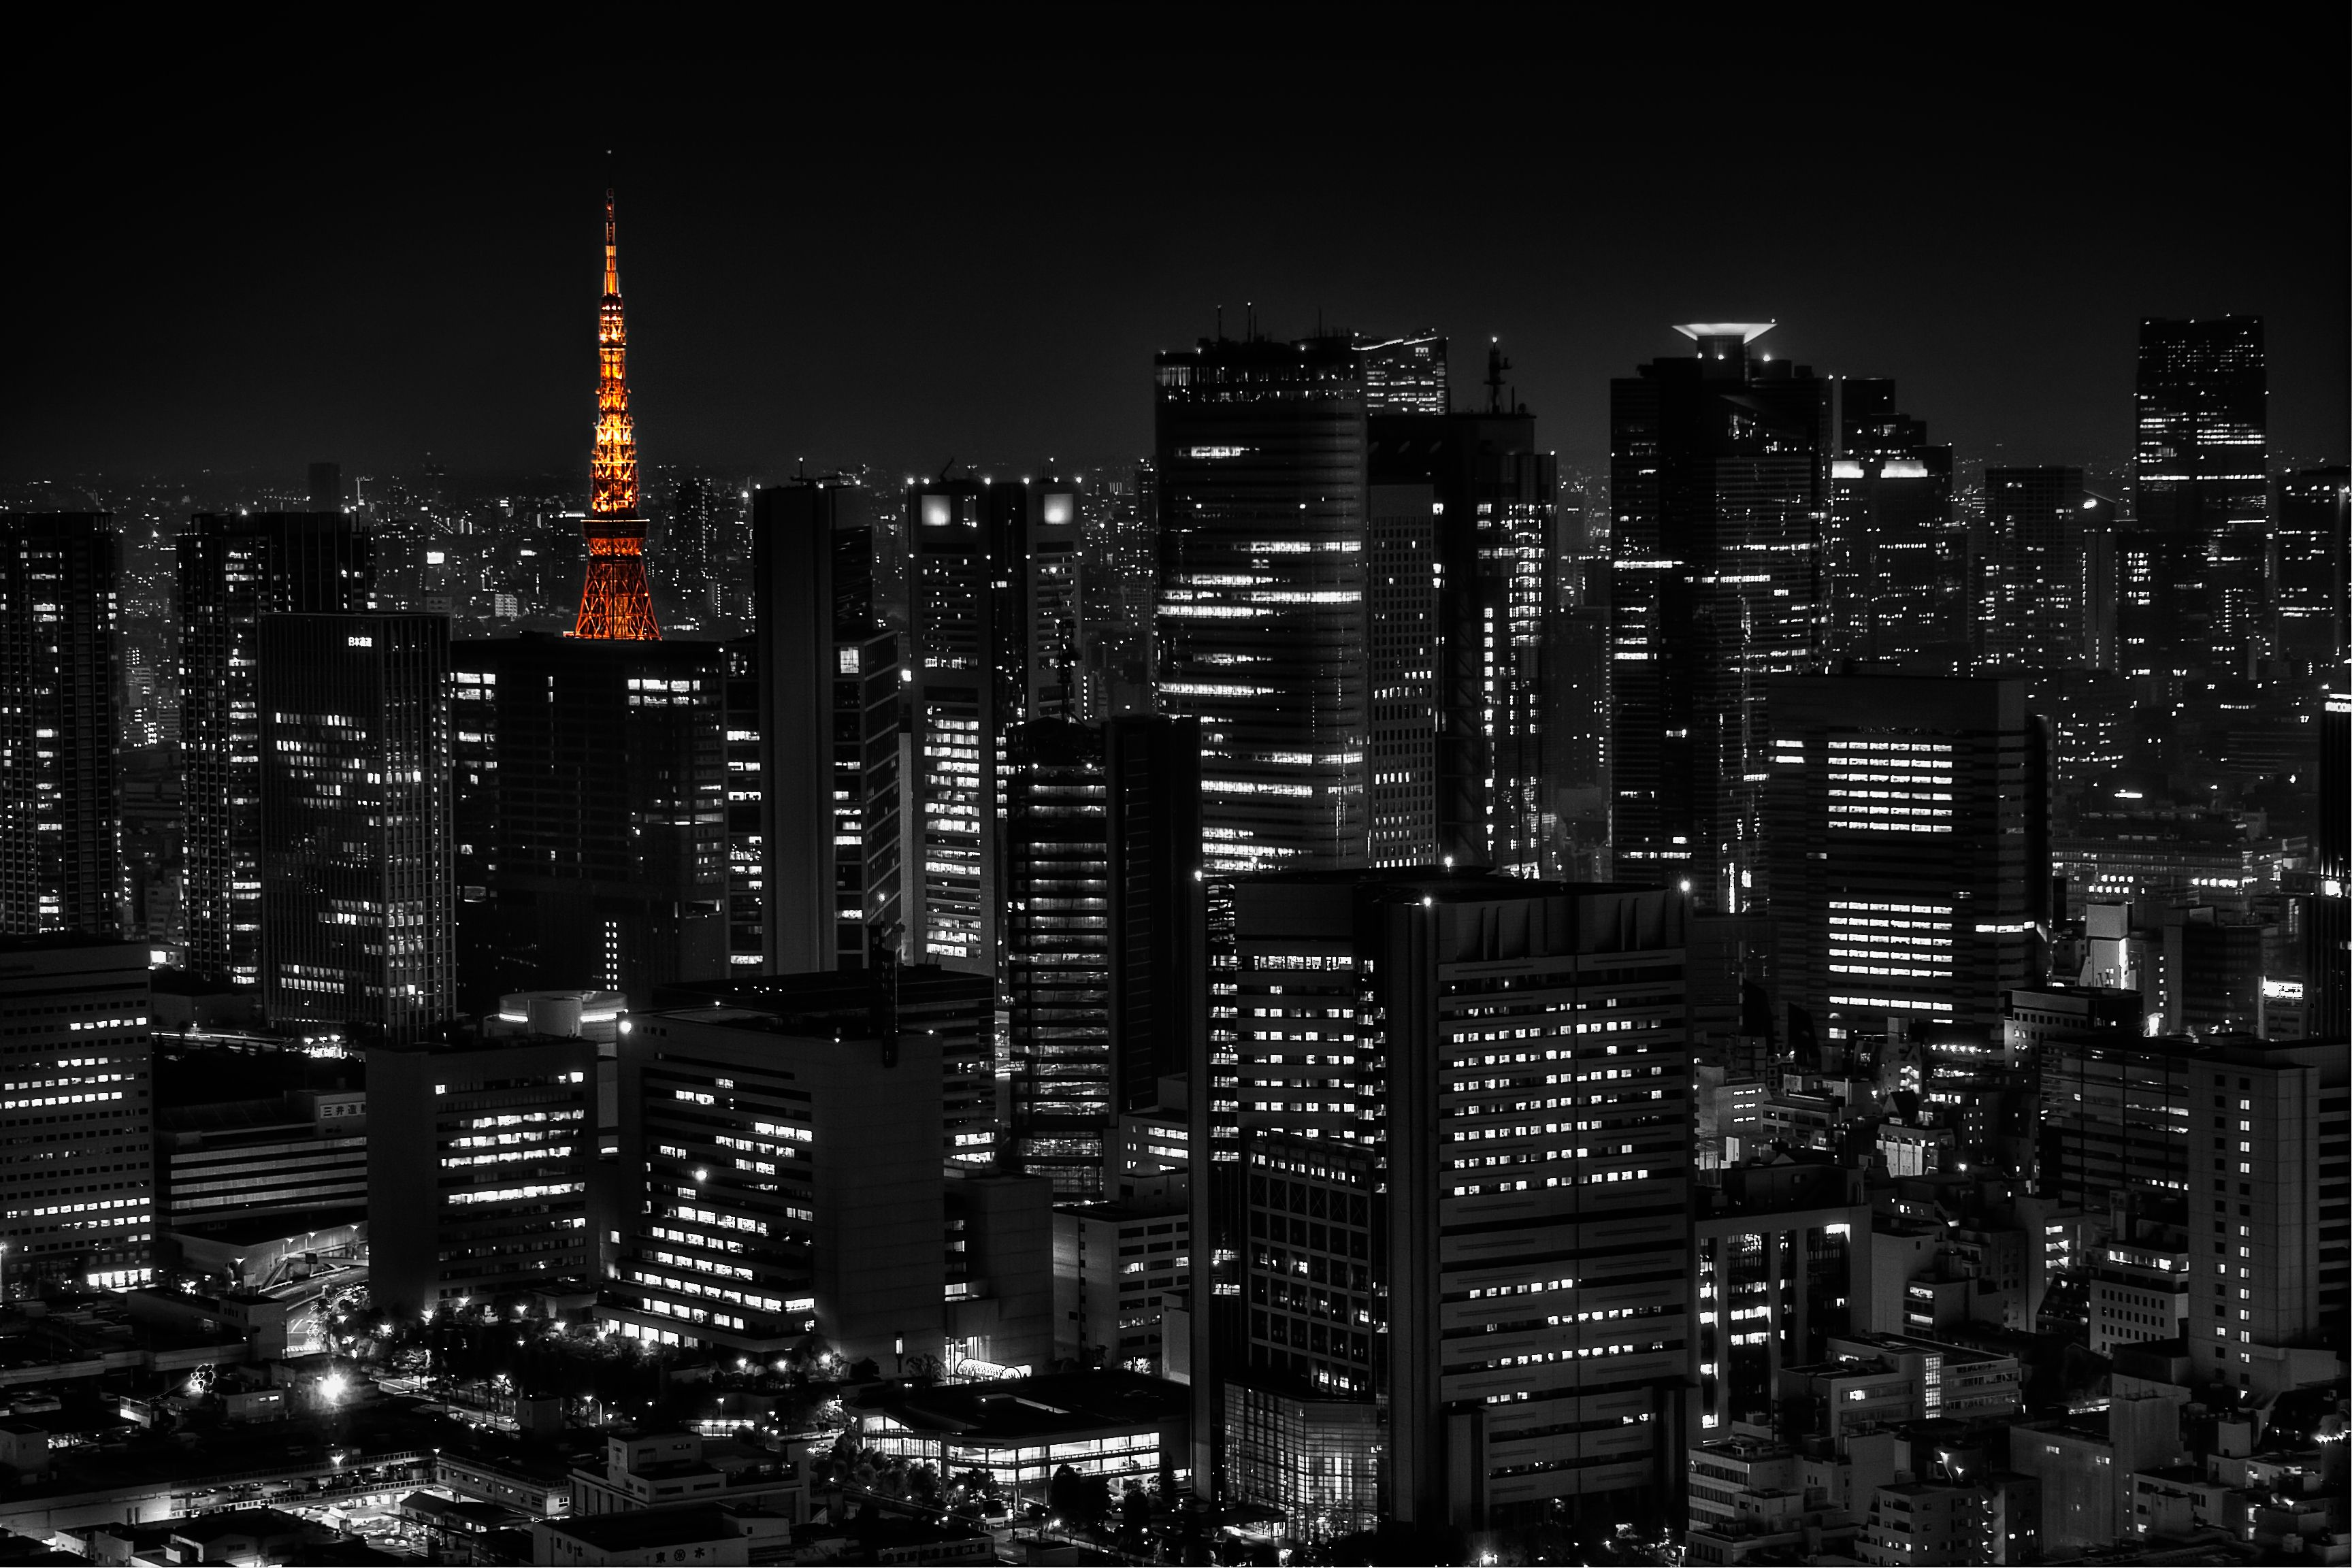 Tokyo Wallpapers Black And White Picture Landscape Wallpaper Black And White Pictures Tokyo Ghoul Wallpapers